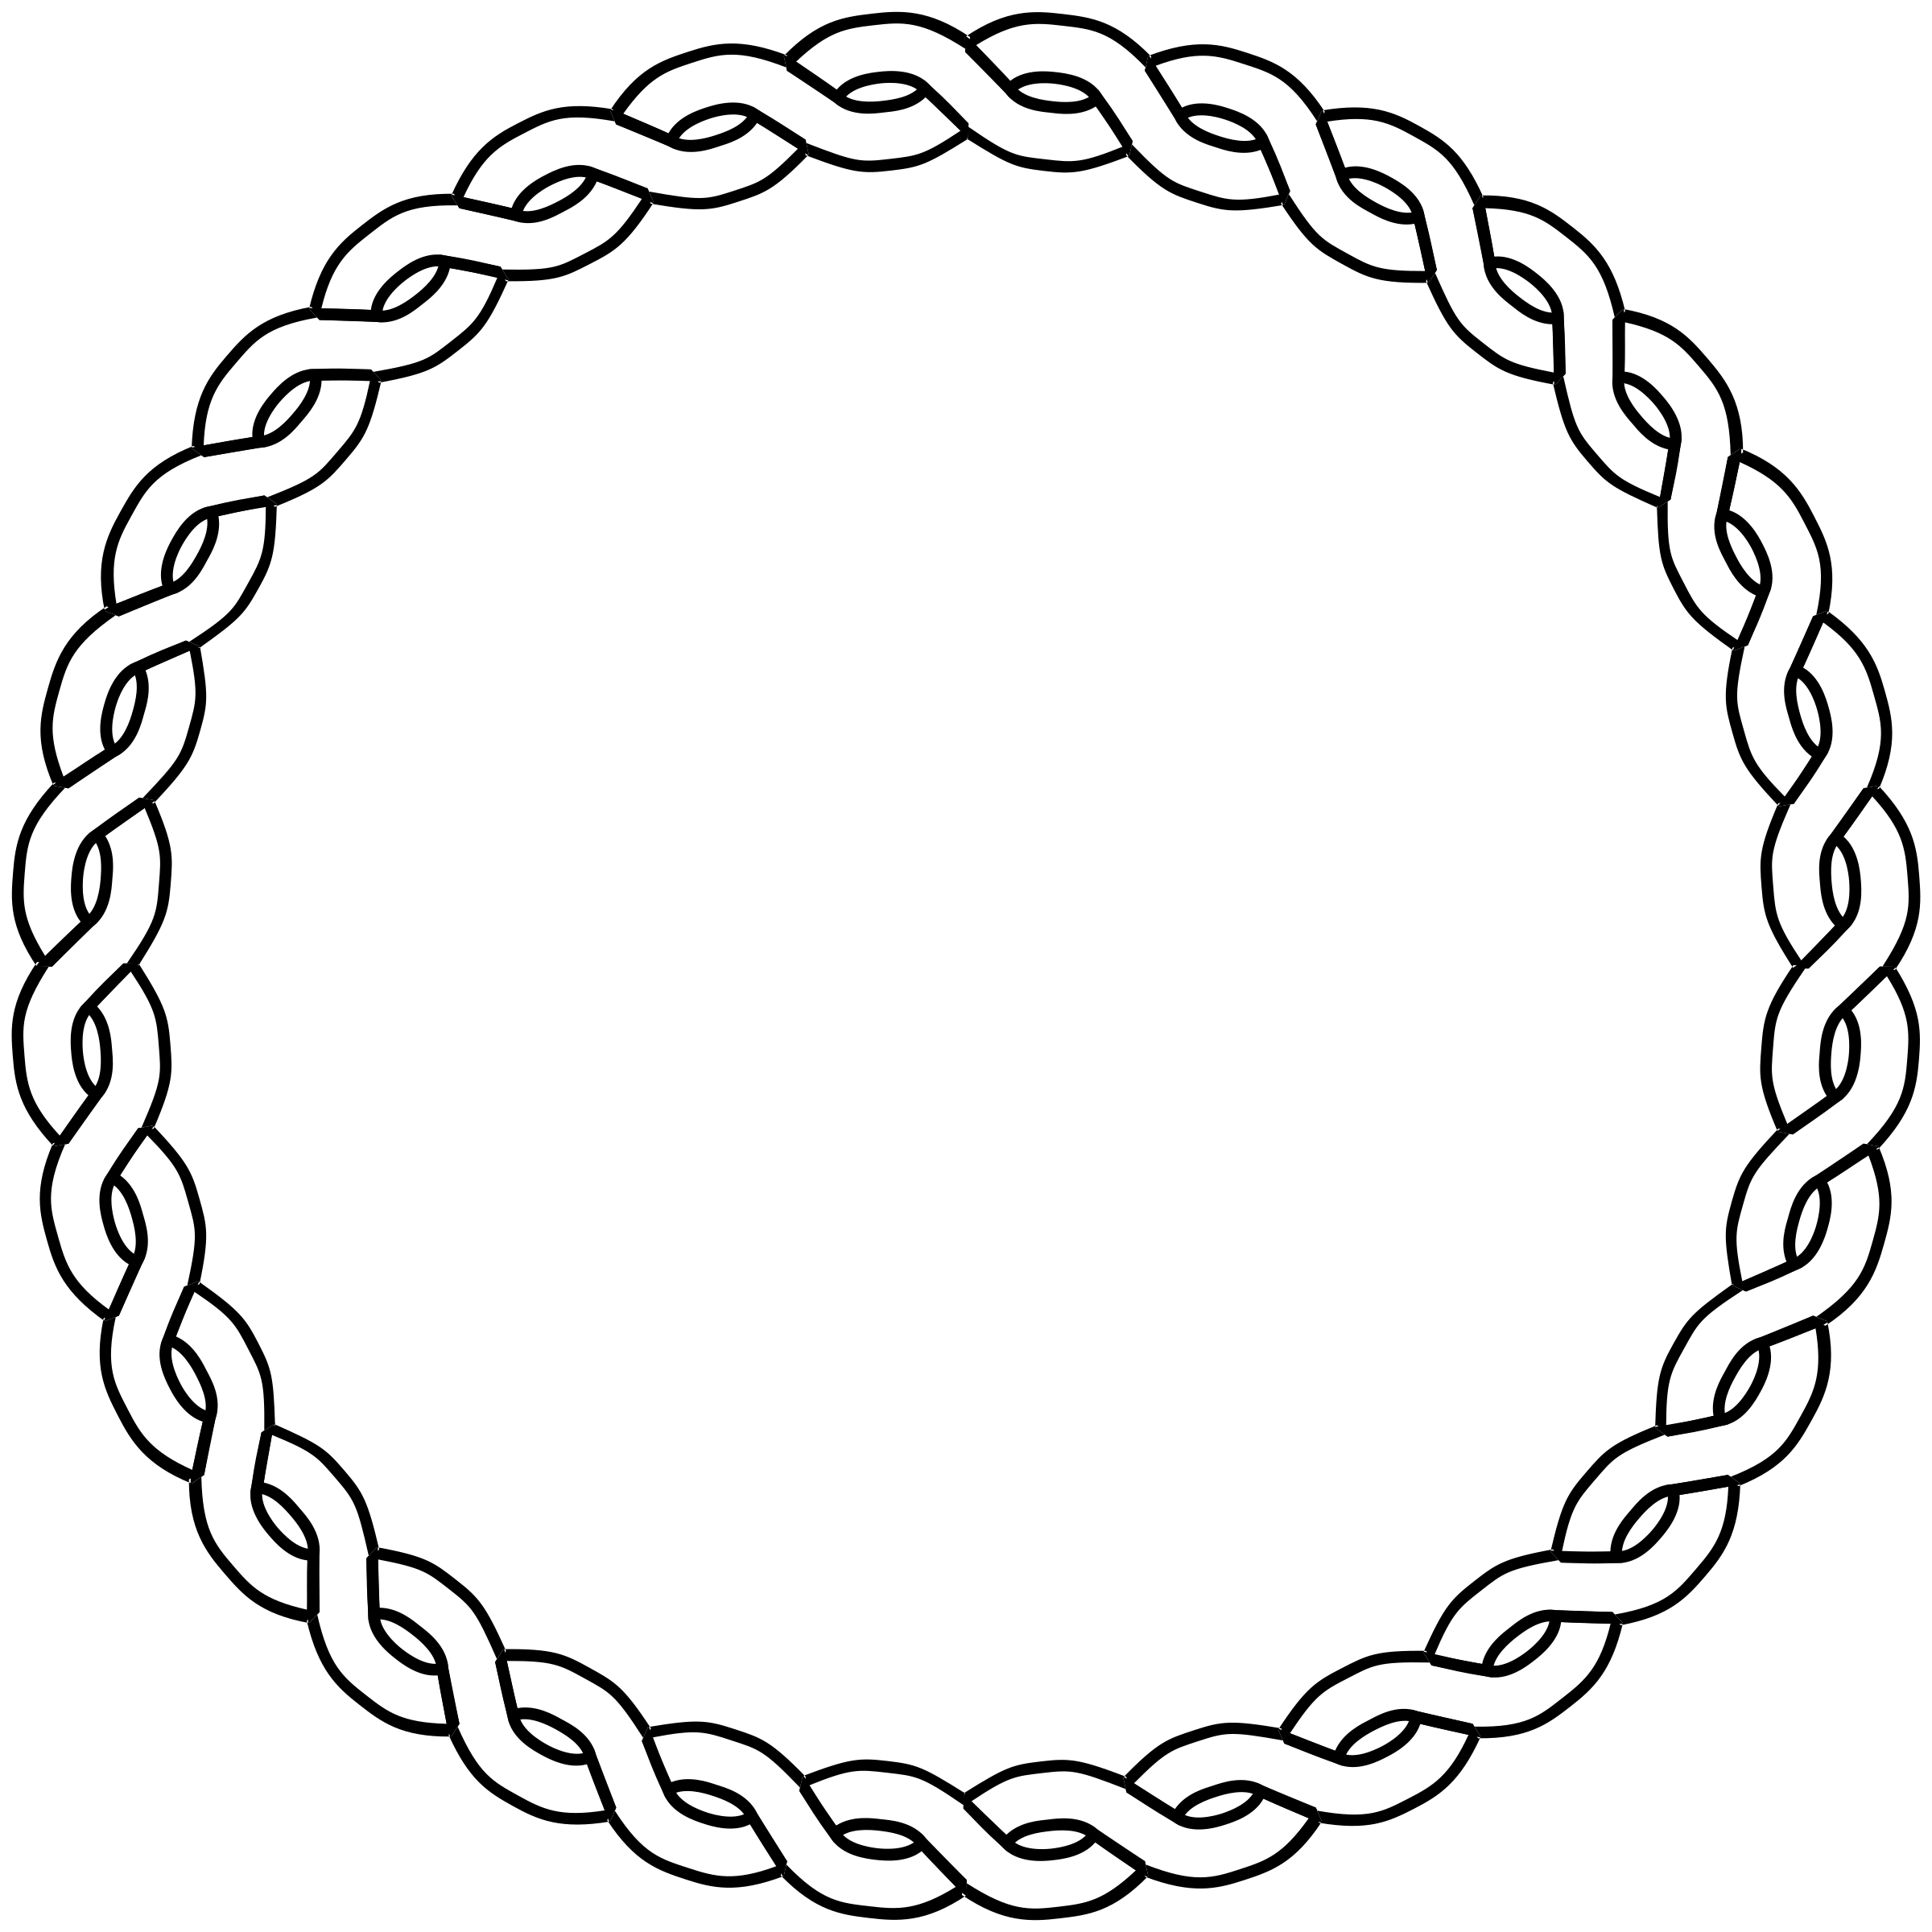 Braids vector coloring page. Rope border circle by